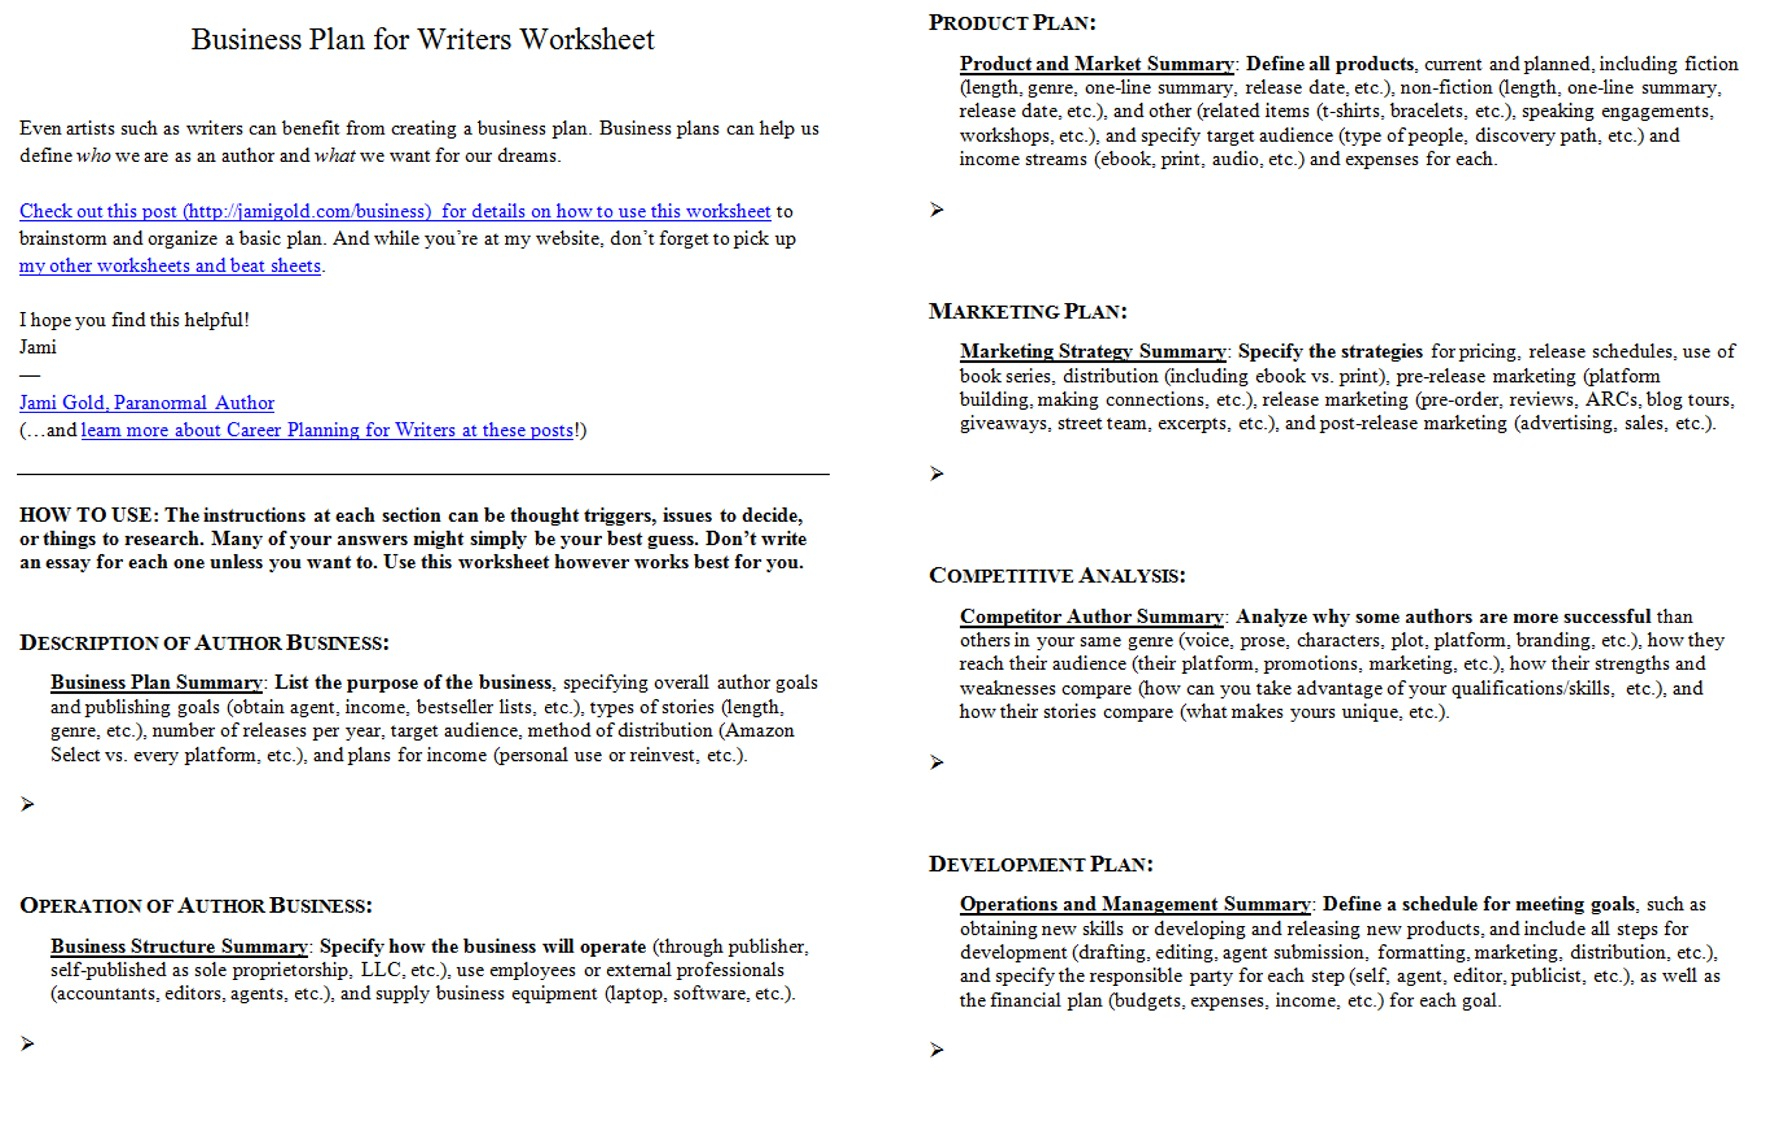 Aldiablosus  Gorgeous Worksheets For Writers  Jami Gold Paranormal Author With Luxury Screen Shot Of Both Pages Of The Business Plan For Writers Worksheet With Endearing Teaching Numbers To Preschoolers Worksheets Also Linking Verbs And Helping Verbs Worksheets In Addition Adjective Worksheets For Grade  And Olympic Math Worksheets As Well As Composite Numbers Worksheet Additionally Grade  Bar Graph Worksheets From Jamigoldcom With Aldiablosus  Luxury Worksheets For Writers  Jami Gold Paranormal Author With Endearing Screen Shot Of Both Pages Of The Business Plan For Writers Worksheet And Gorgeous Teaching Numbers To Preschoolers Worksheets Also Linking Verbs And Helping Verbs Worksheets In Addition Adjective Worksheets For Grade  From Jamigoldcom